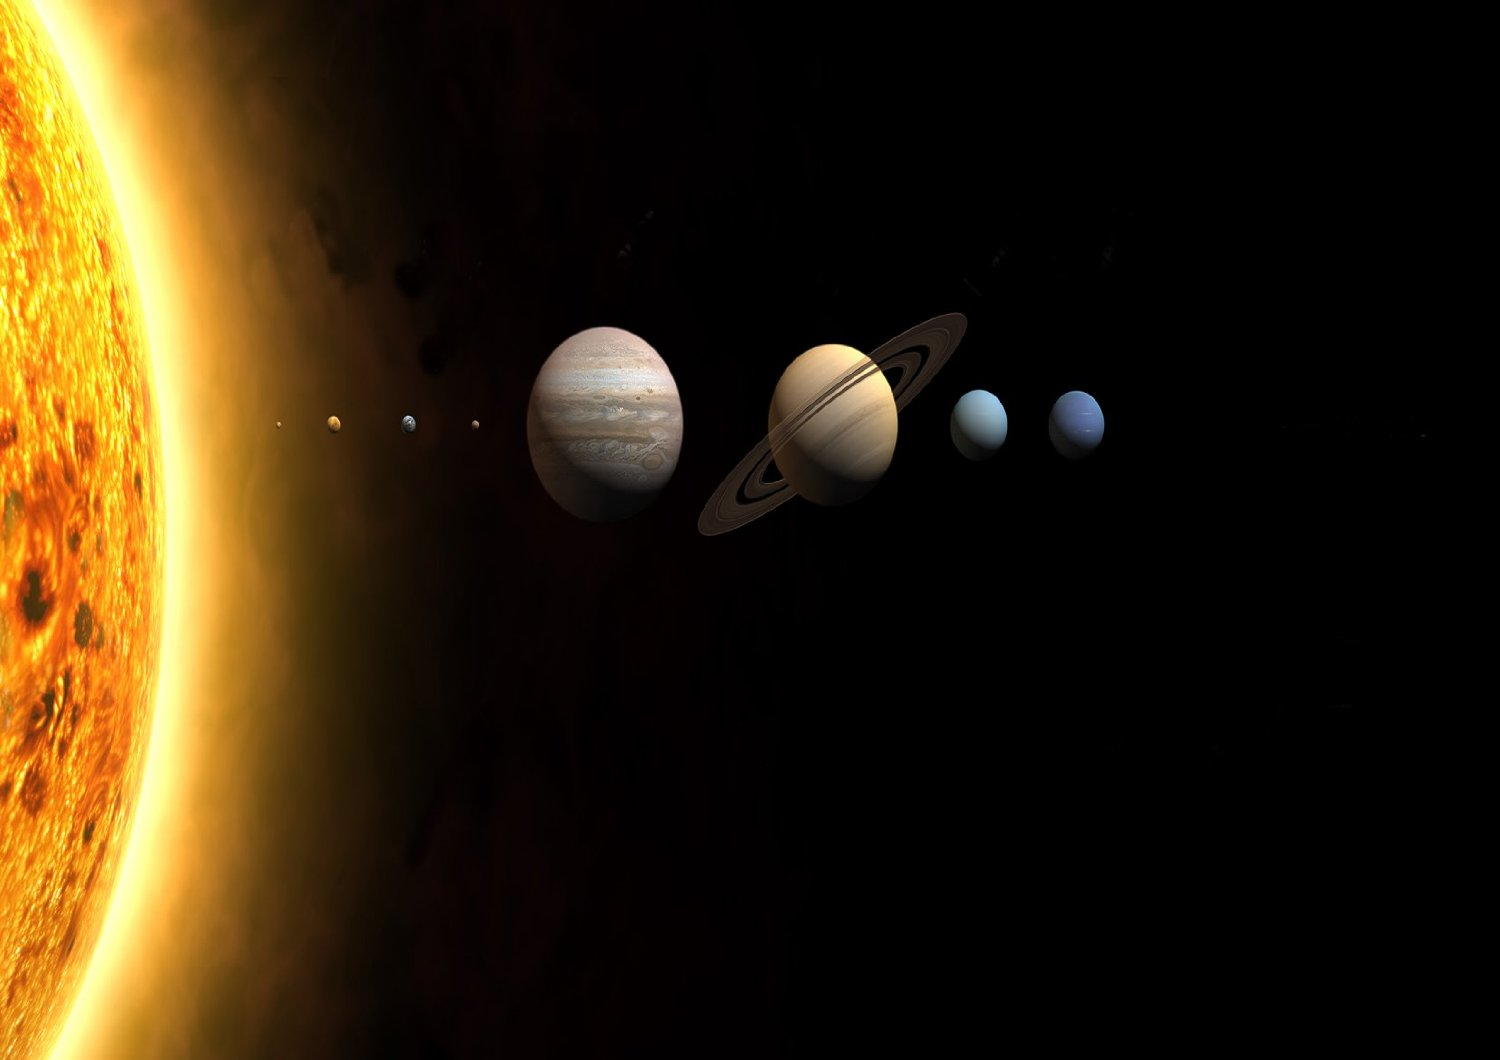 The Planets and Sun Image